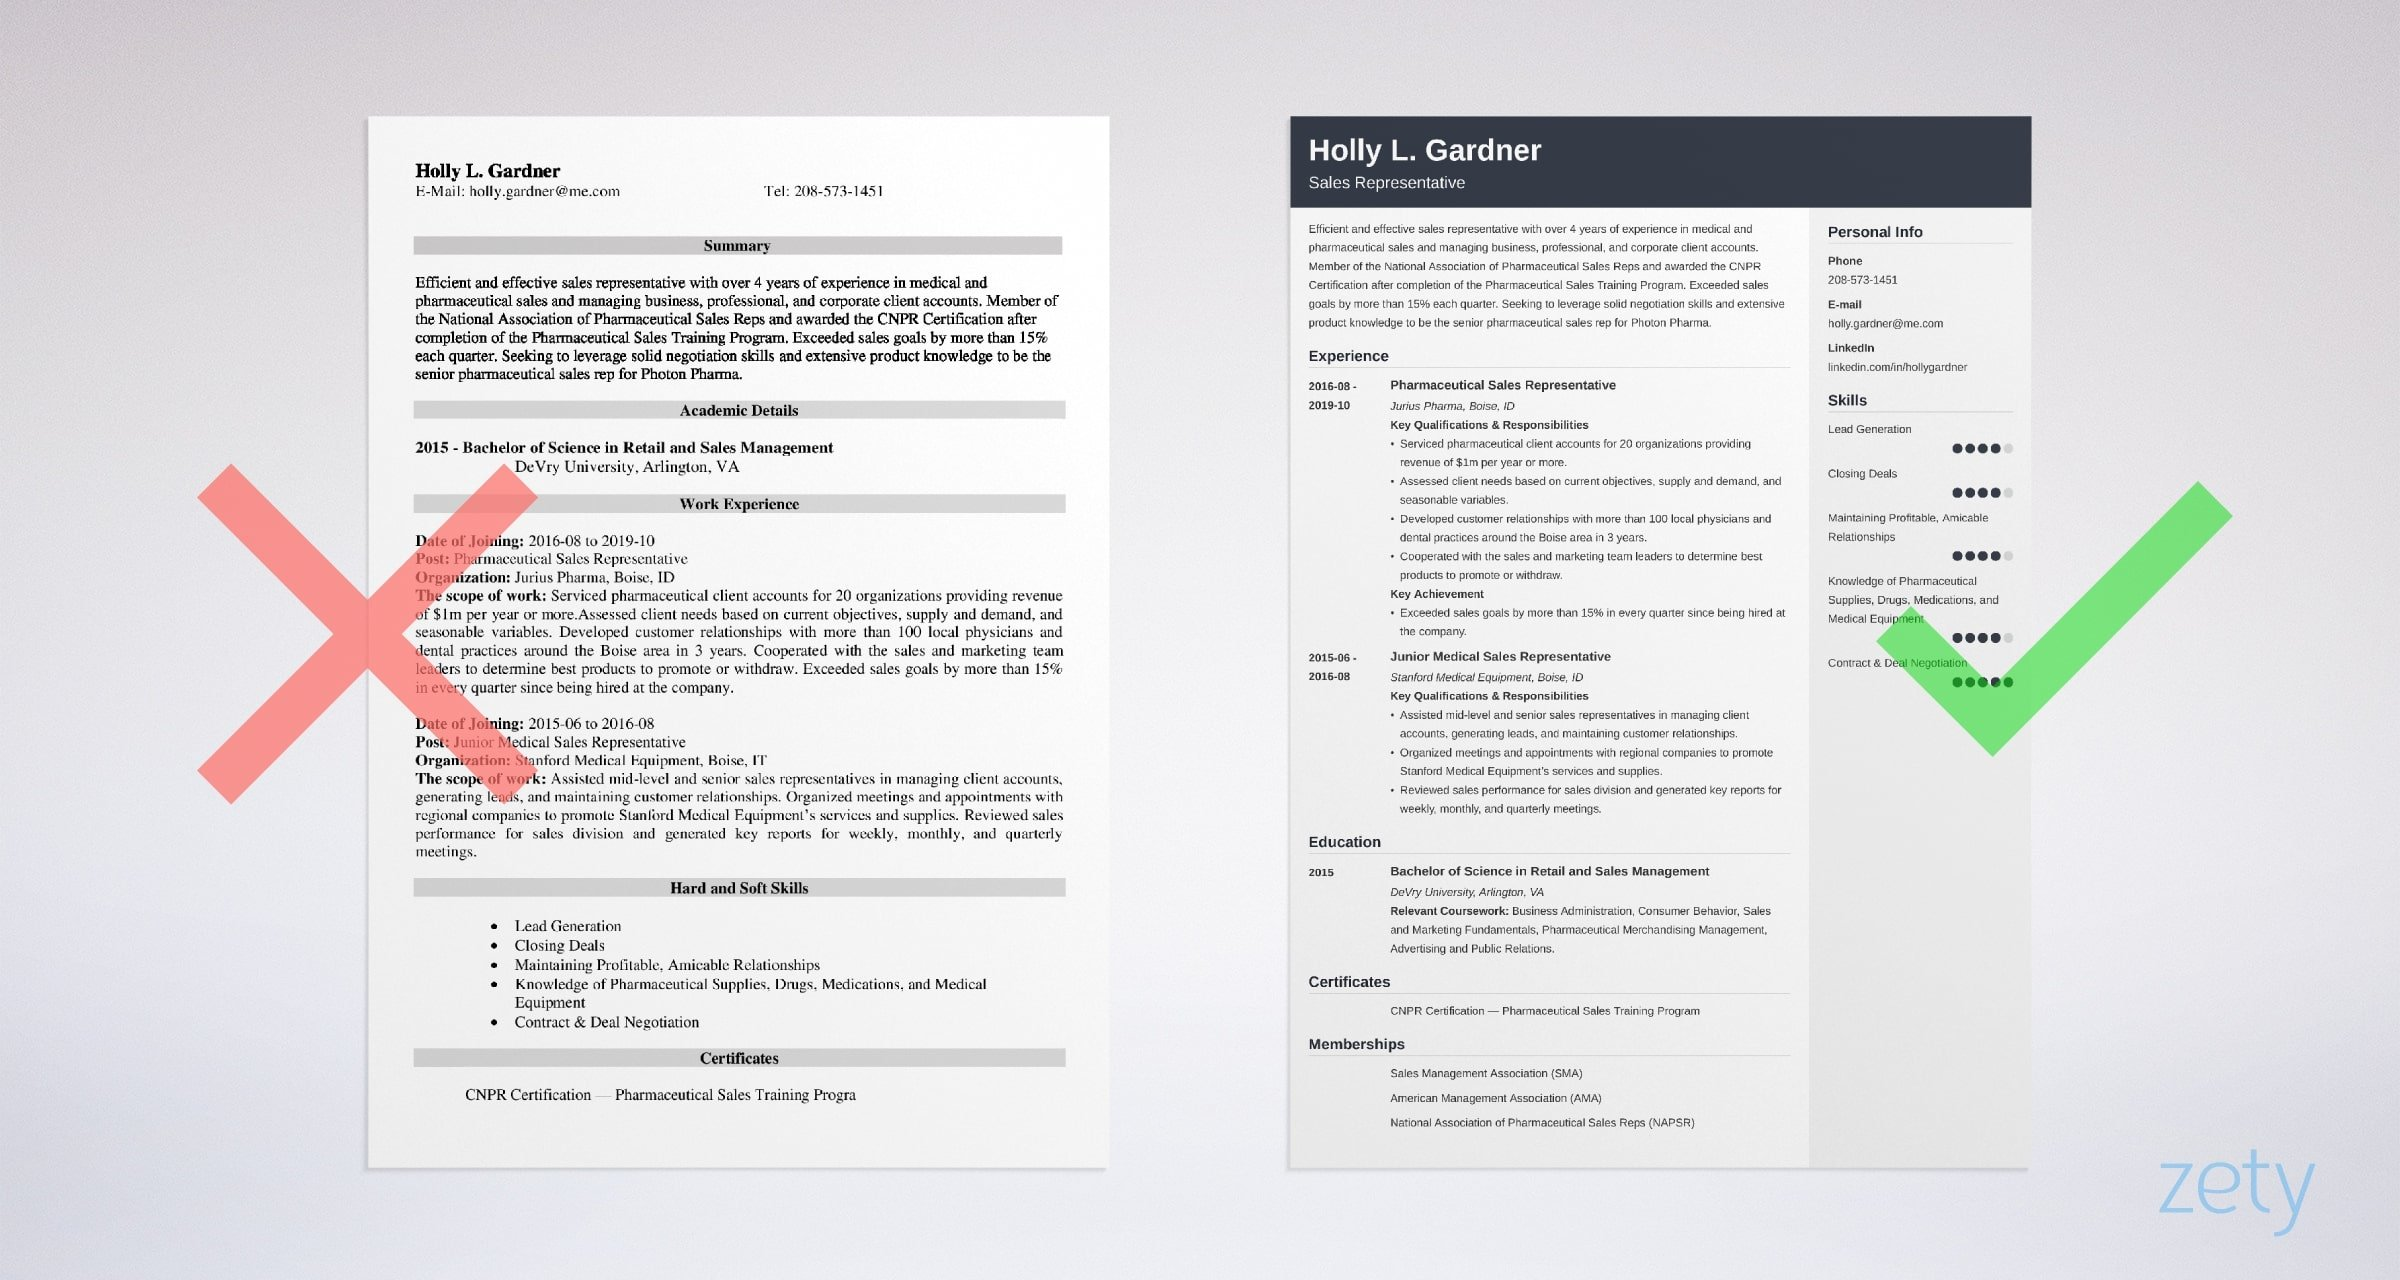 resume examples for representative tips business example make your pitch law school Resume Business Resume Examples 2019